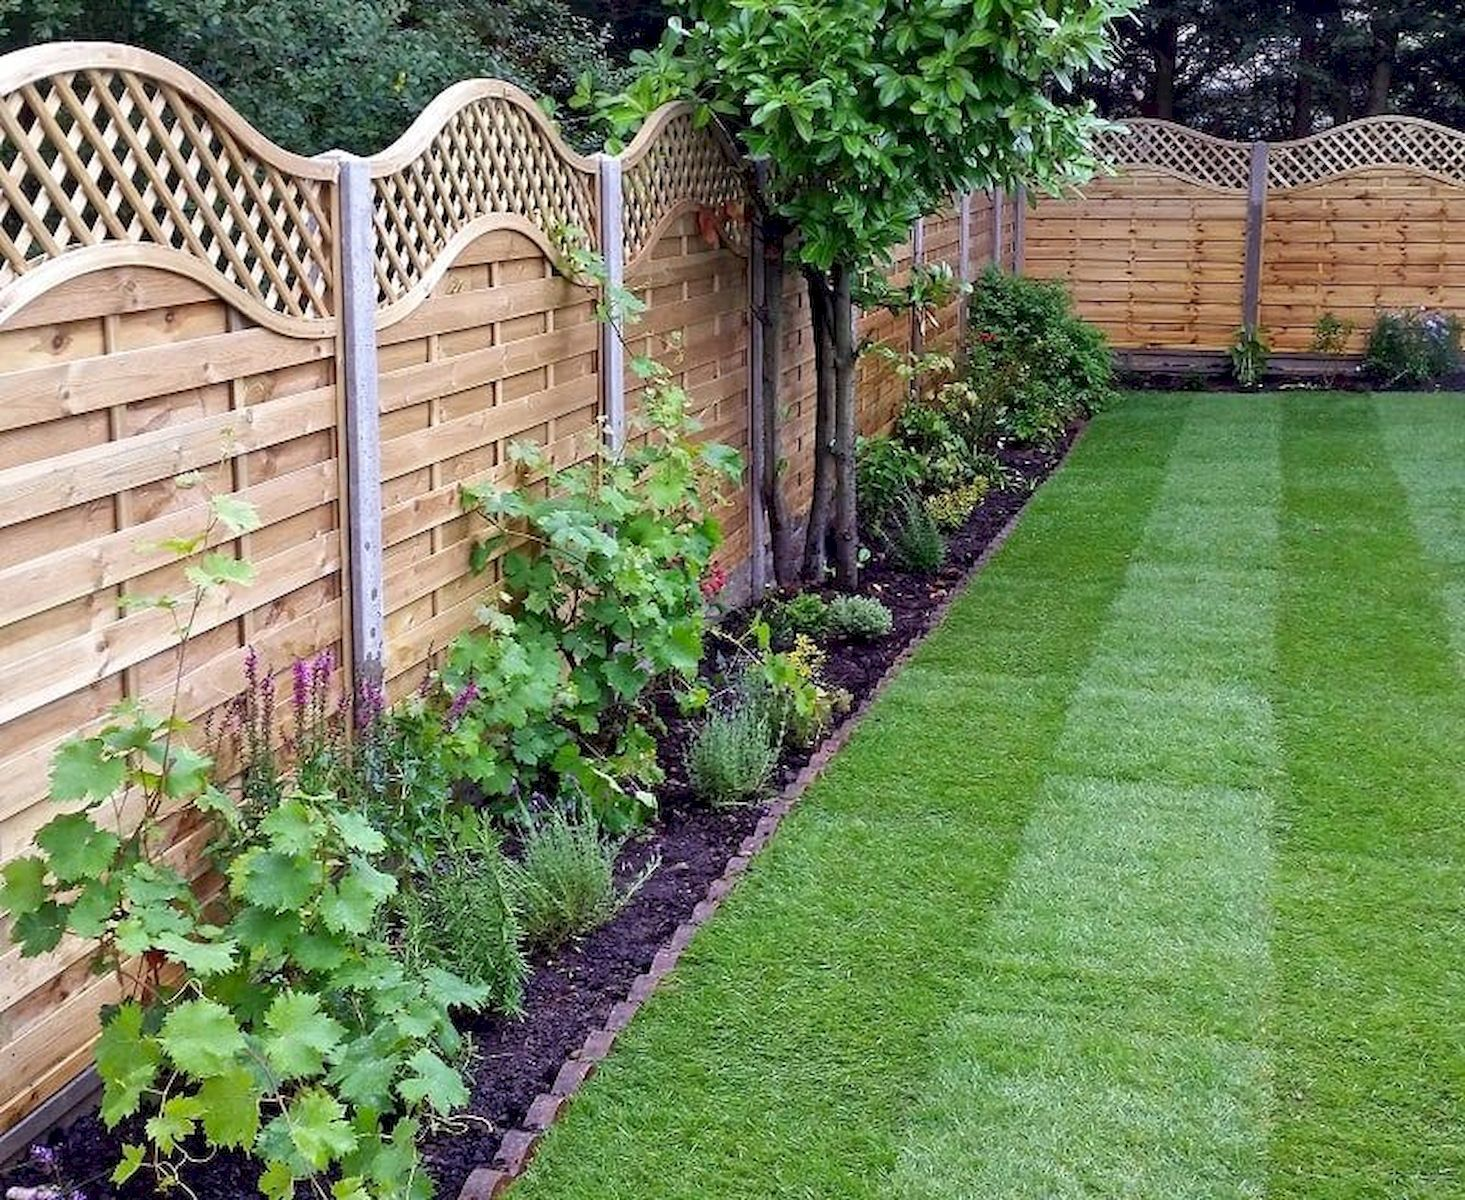 25 Recomended Backyard Fence For Your Privacy Https Hajarfresh Com 25 Recomended Backyard Fenc Large Backyard Landscaping Small Garden Fence Backyard Fences Backyard garden fence ideas